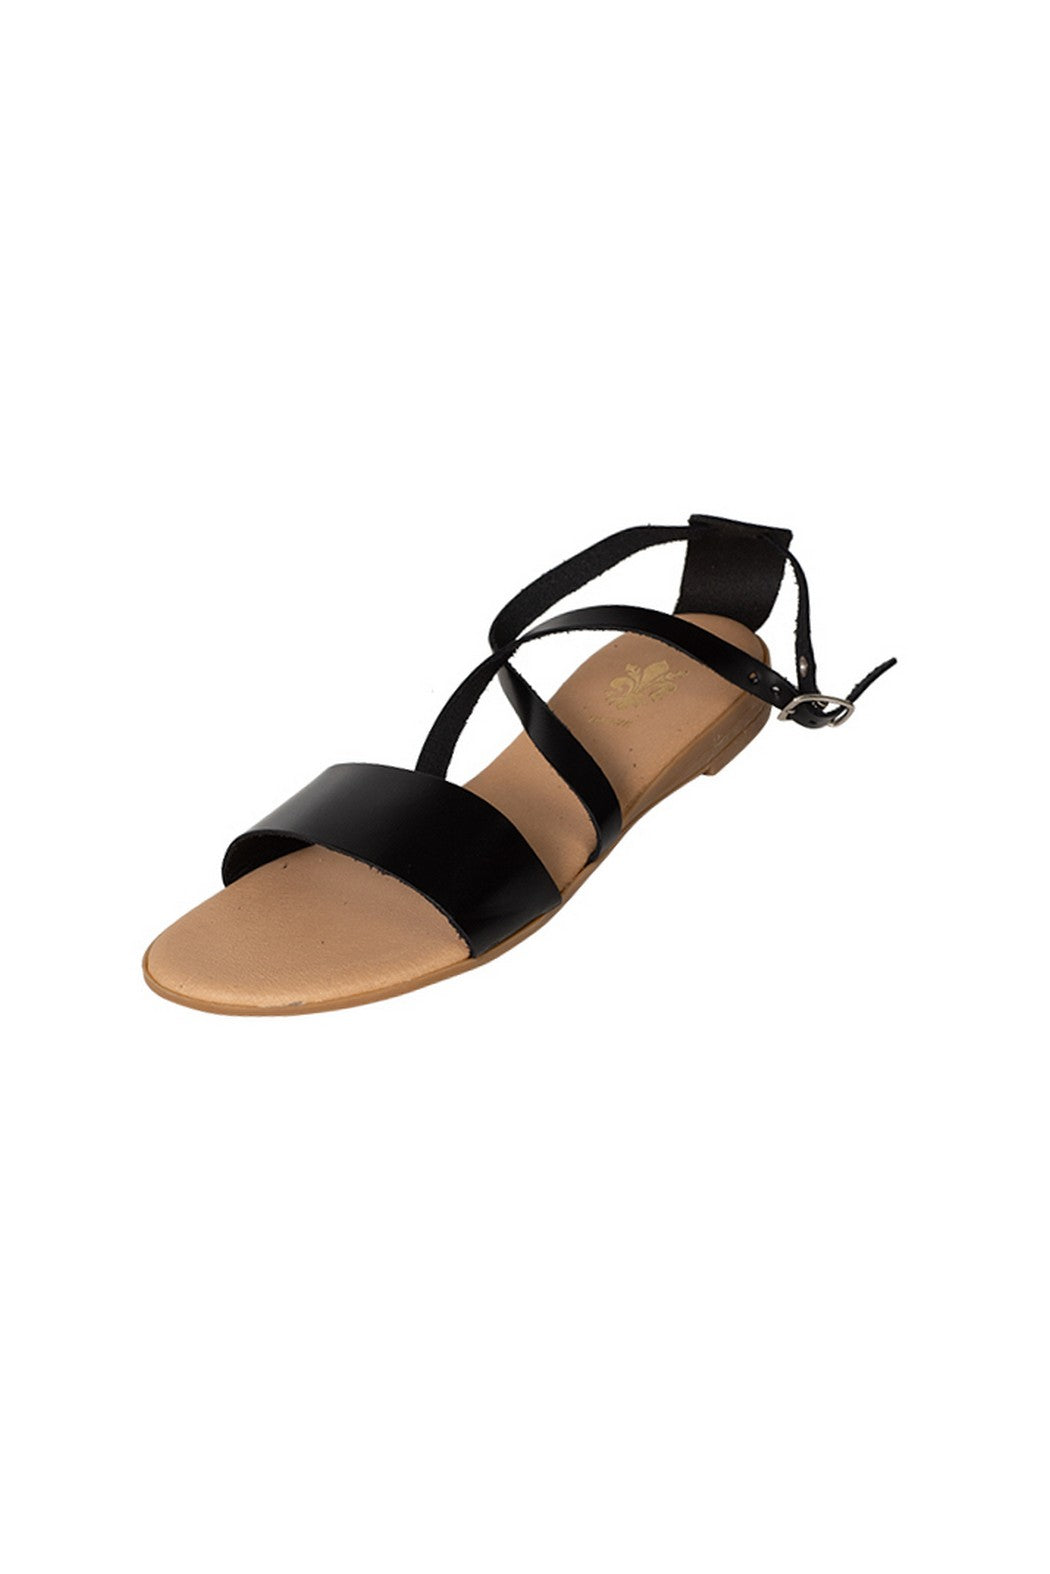 Adele casual black sandal cross over strap less than 100